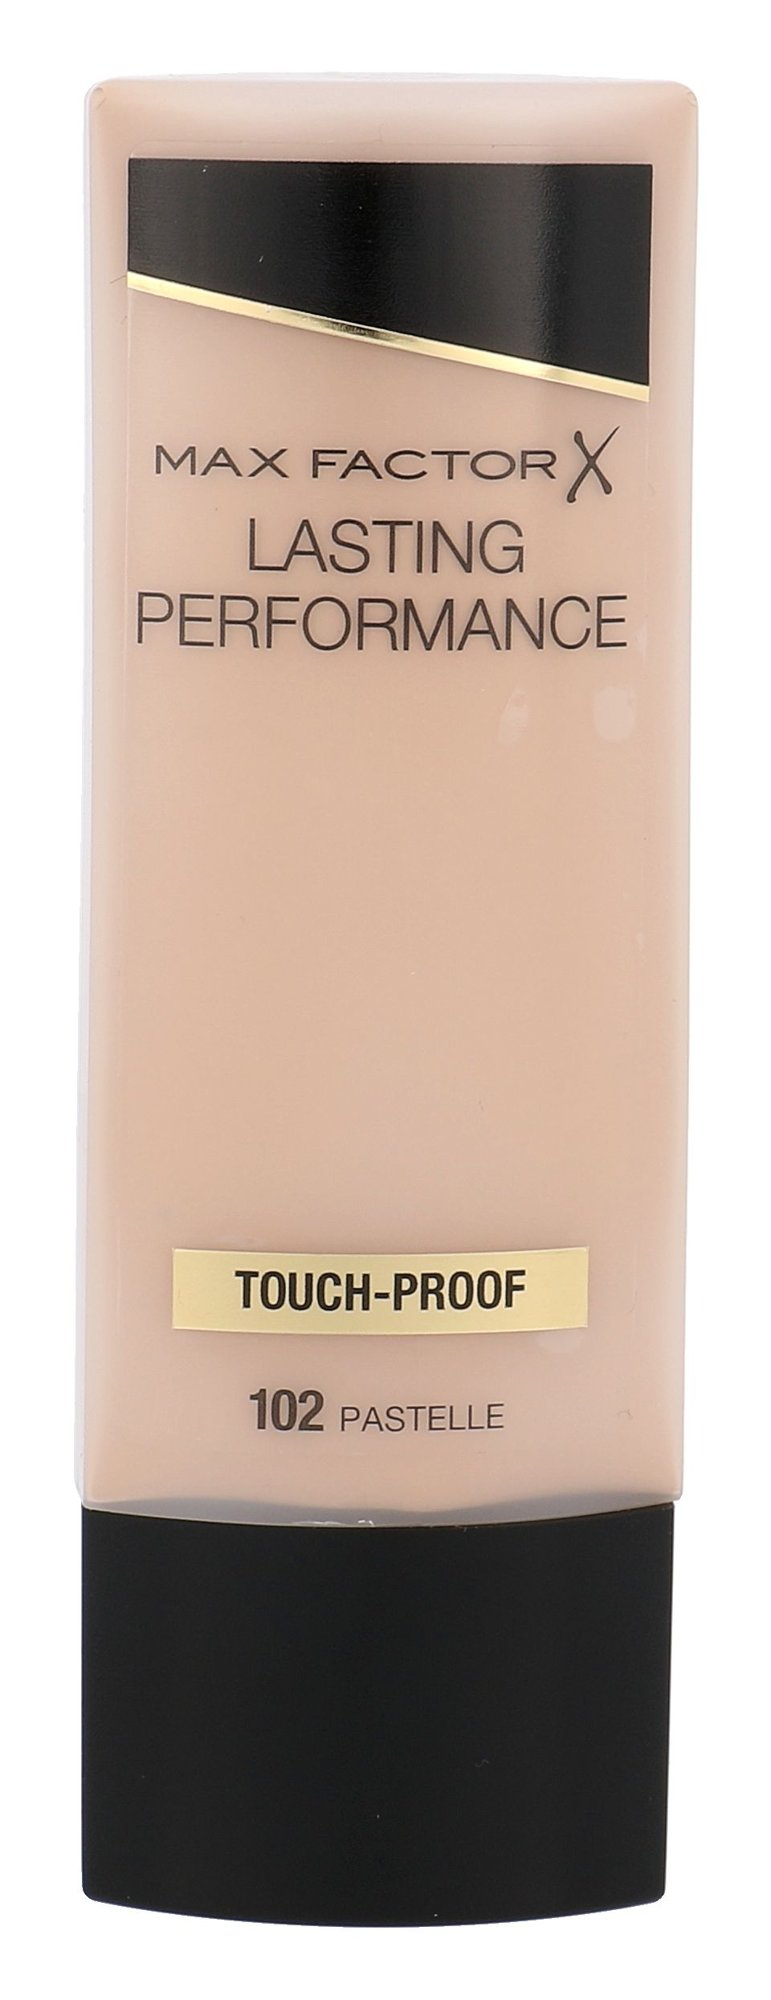 Max Factor Lasting Performance Cosmetic 35ml 102 Pastelle